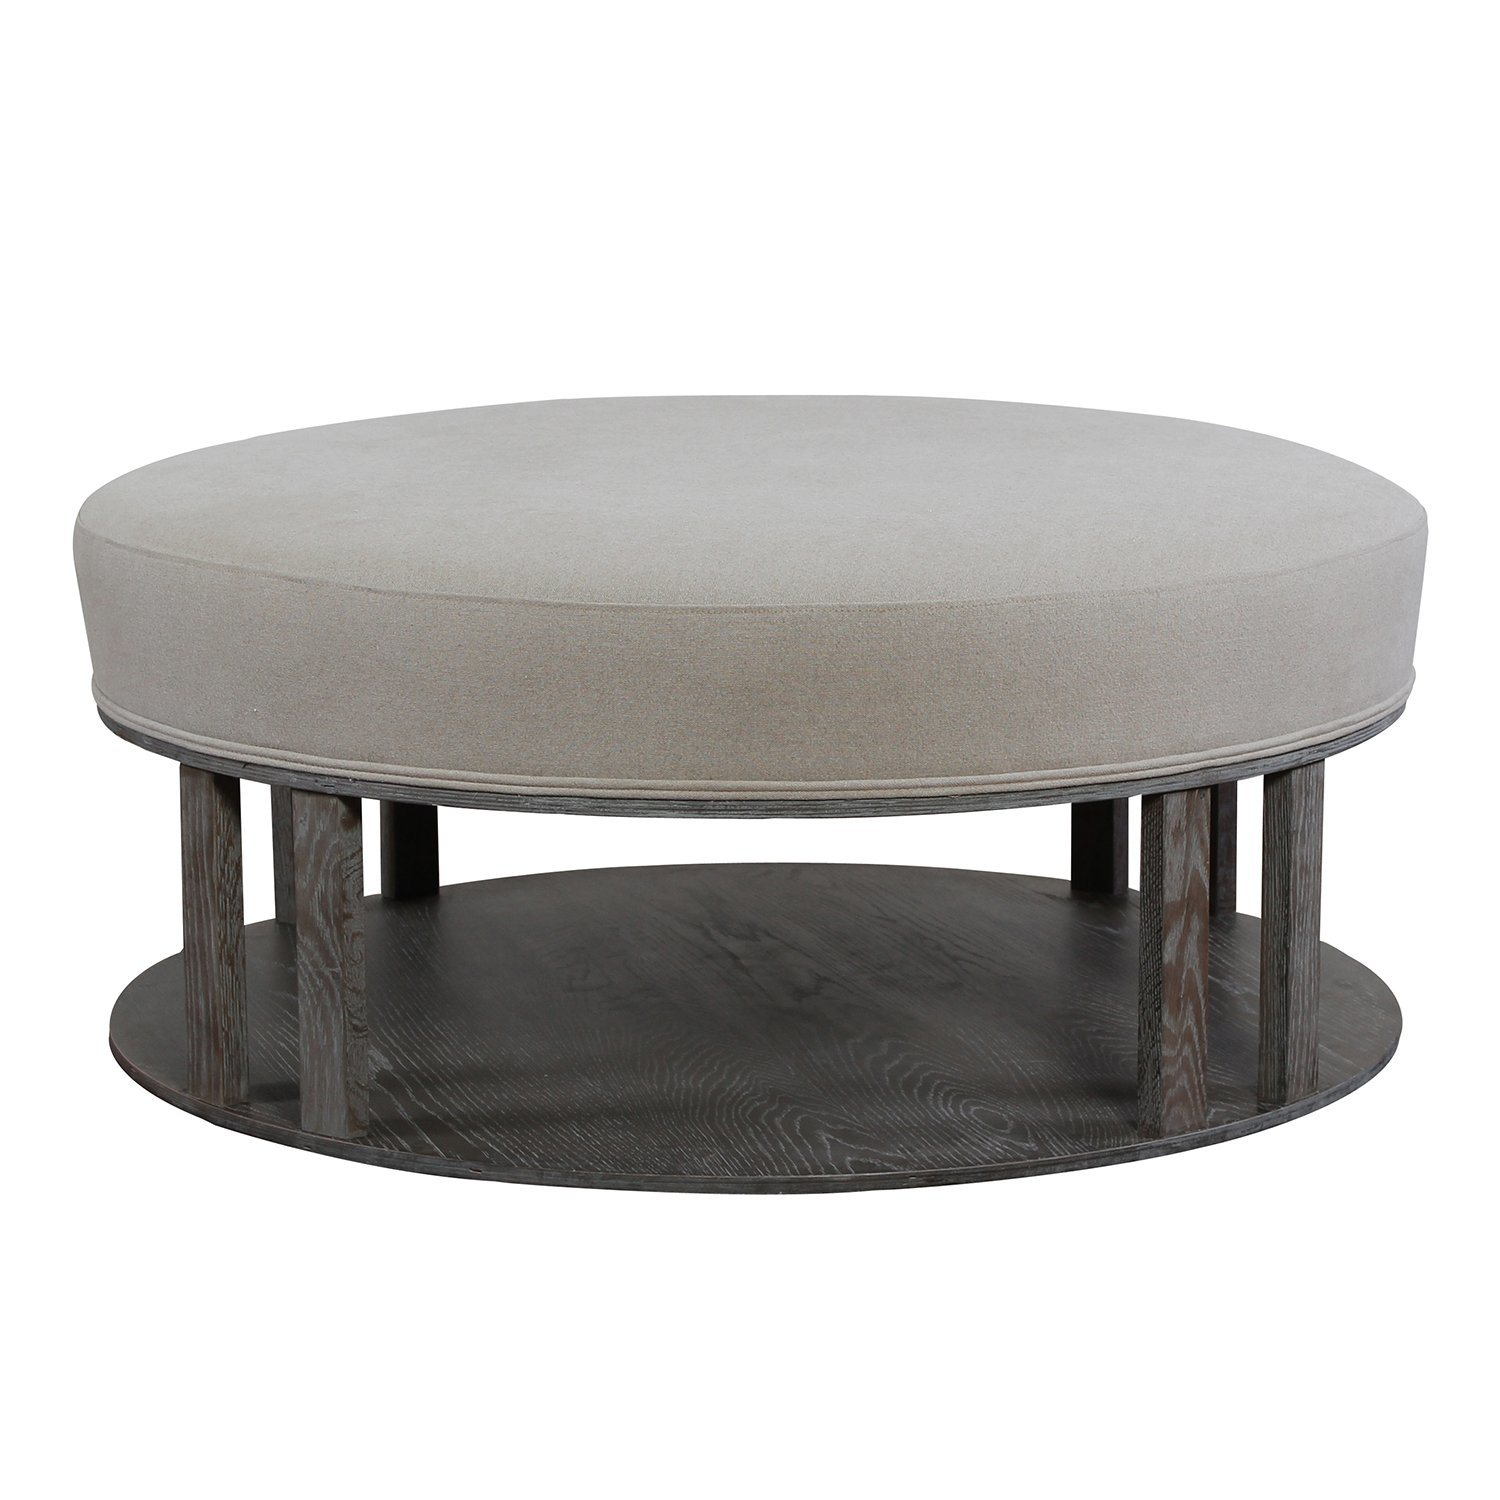 - China Round Upholstered Coffee Table Large Fabric Ottoman - China